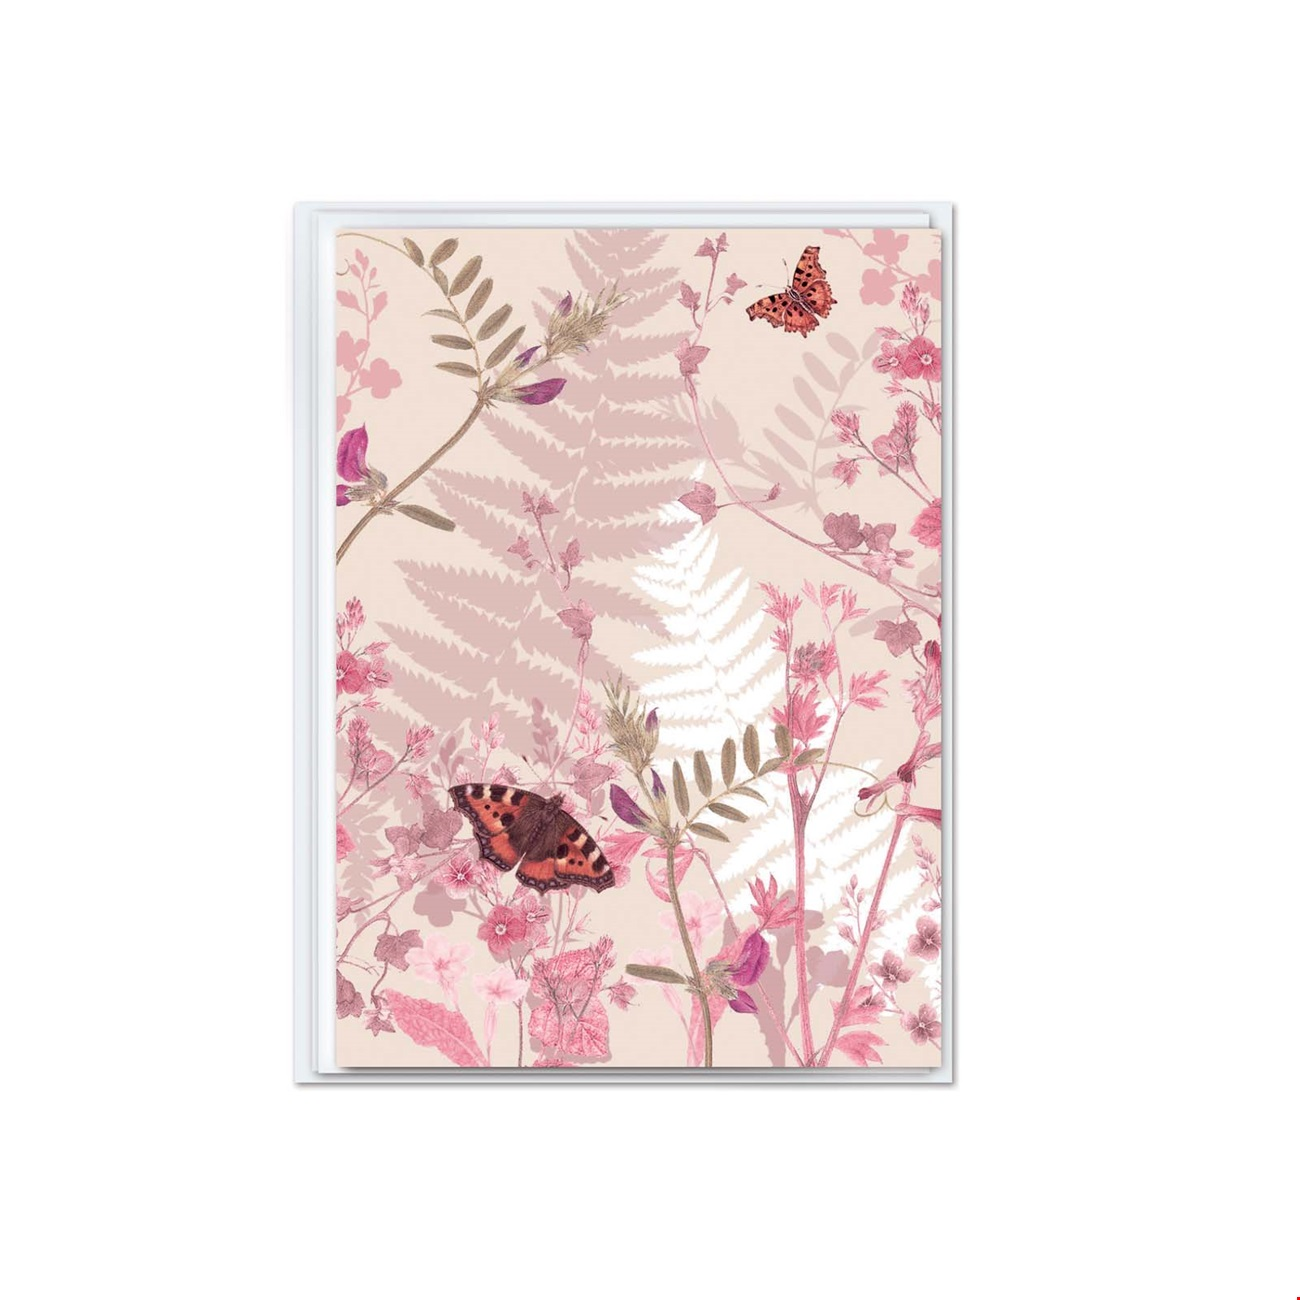 Mini Notecard - Pink Floral and Patterns